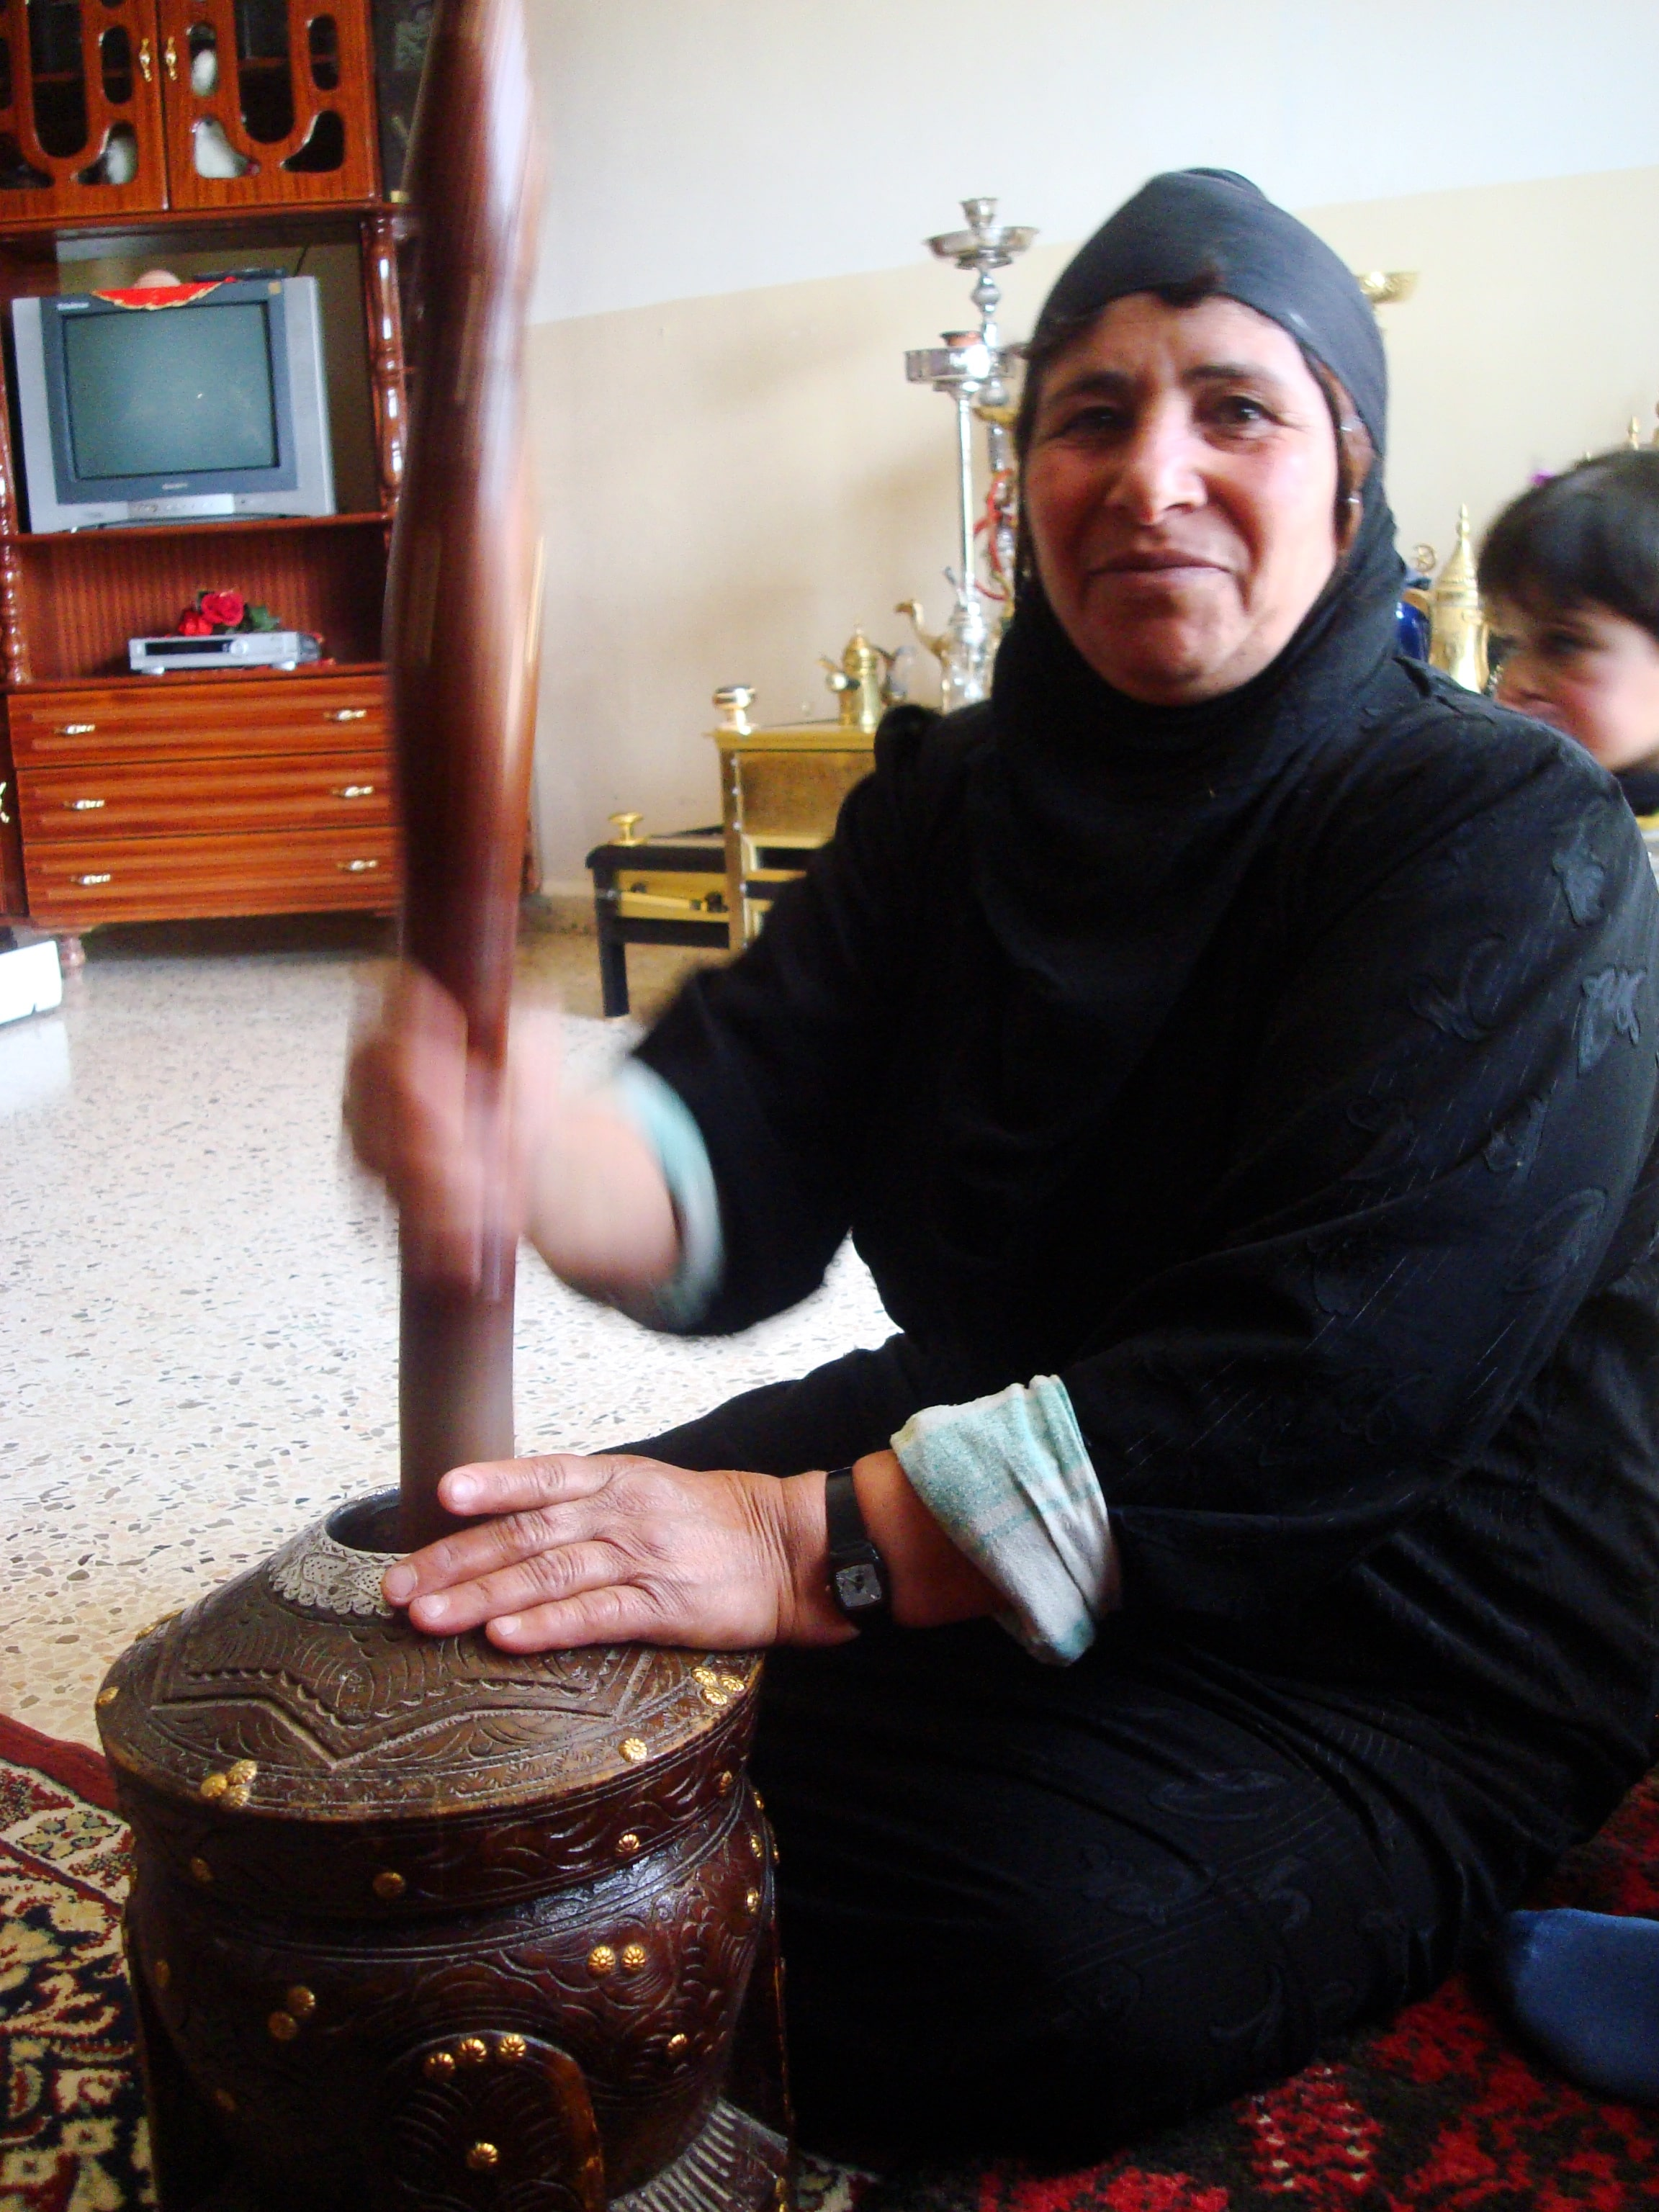 A Bedouin woman beating coffee beans at home.